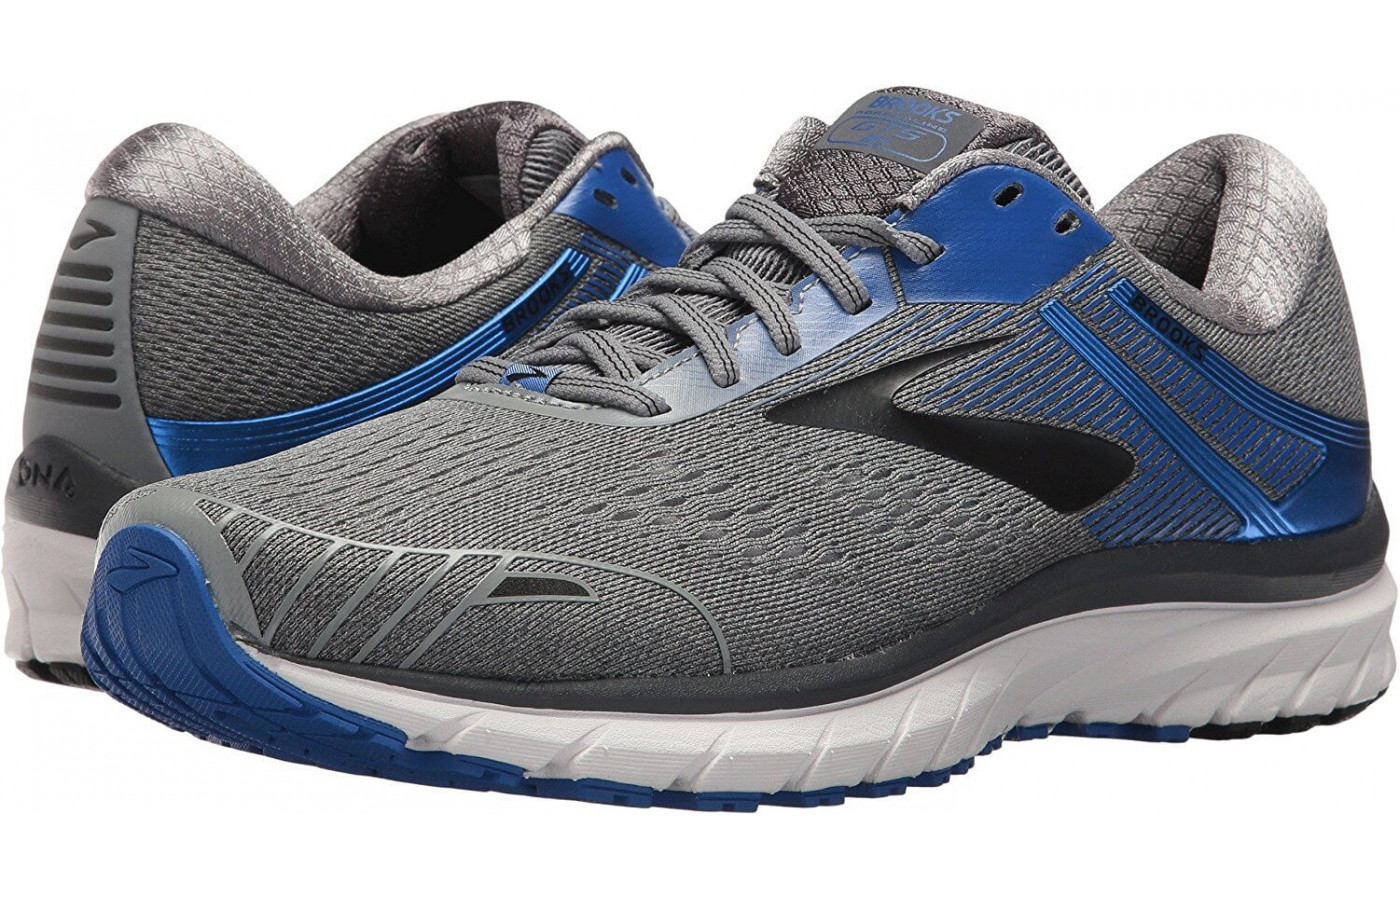 4518af8ebb7 Runners love this shoe for its cushioning and support.